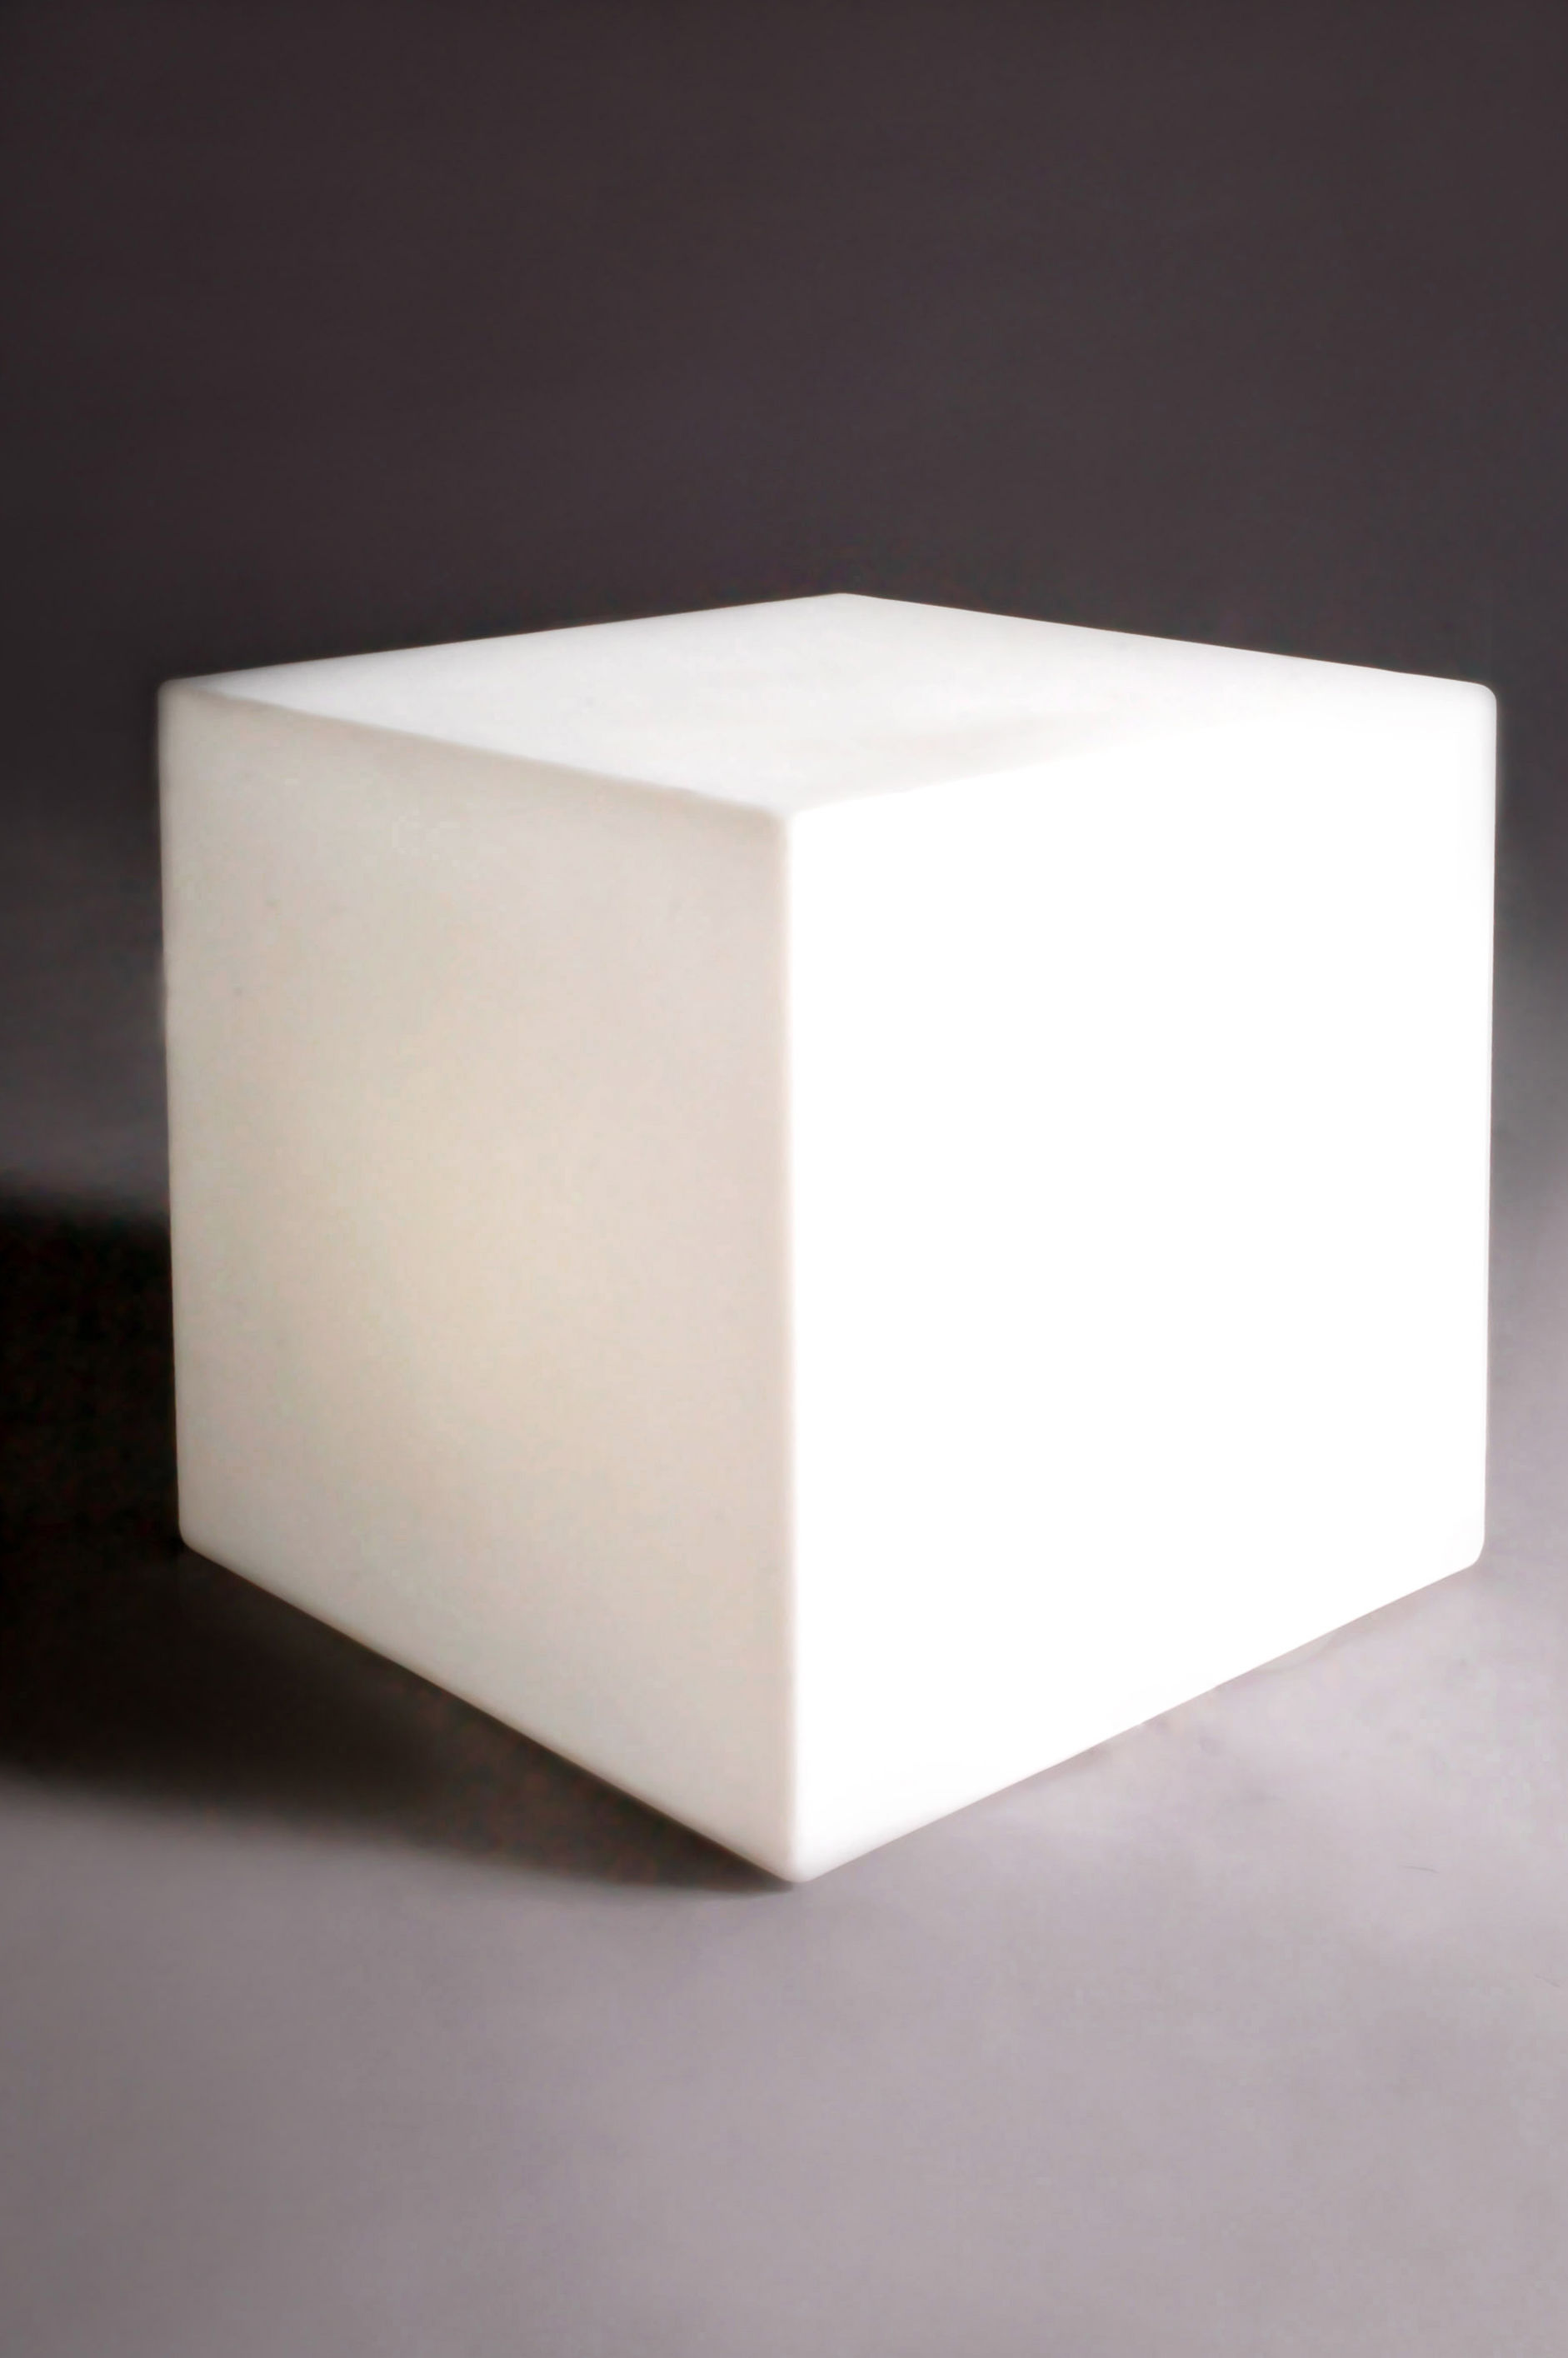 Cubo luminous coffee table outdoor white outdoor by slide for Lampe 5 kabel